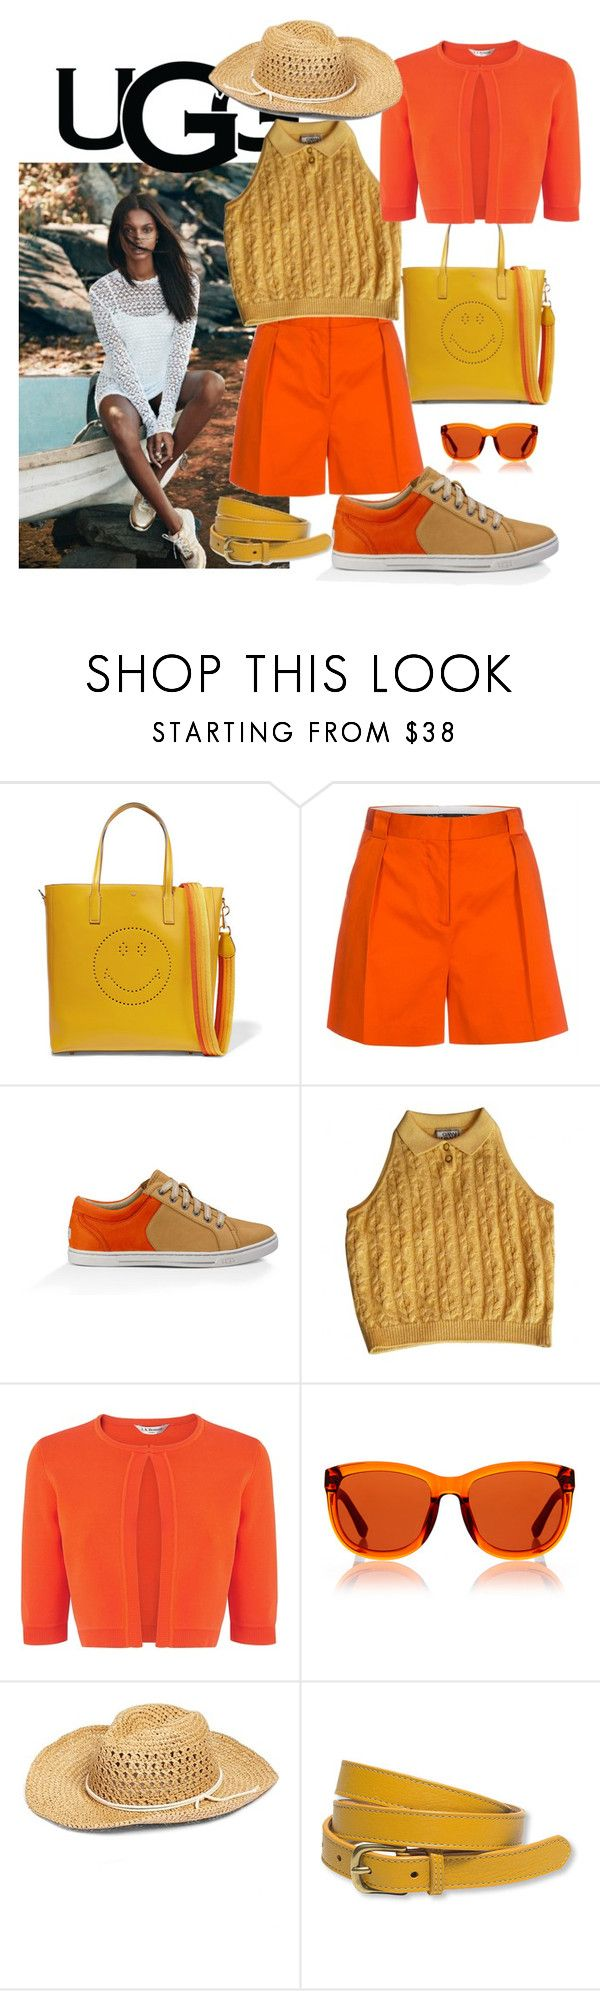 """Play With Prints In UGG: Contest Entry"" by manueladimauro ❤ liked on Polyvore featuring UGG Australia, Anya Hindmarch, Paul Smith, Versace, L.K.Bennett, The Row, Hinge, L.L.Bean and thisisugg"